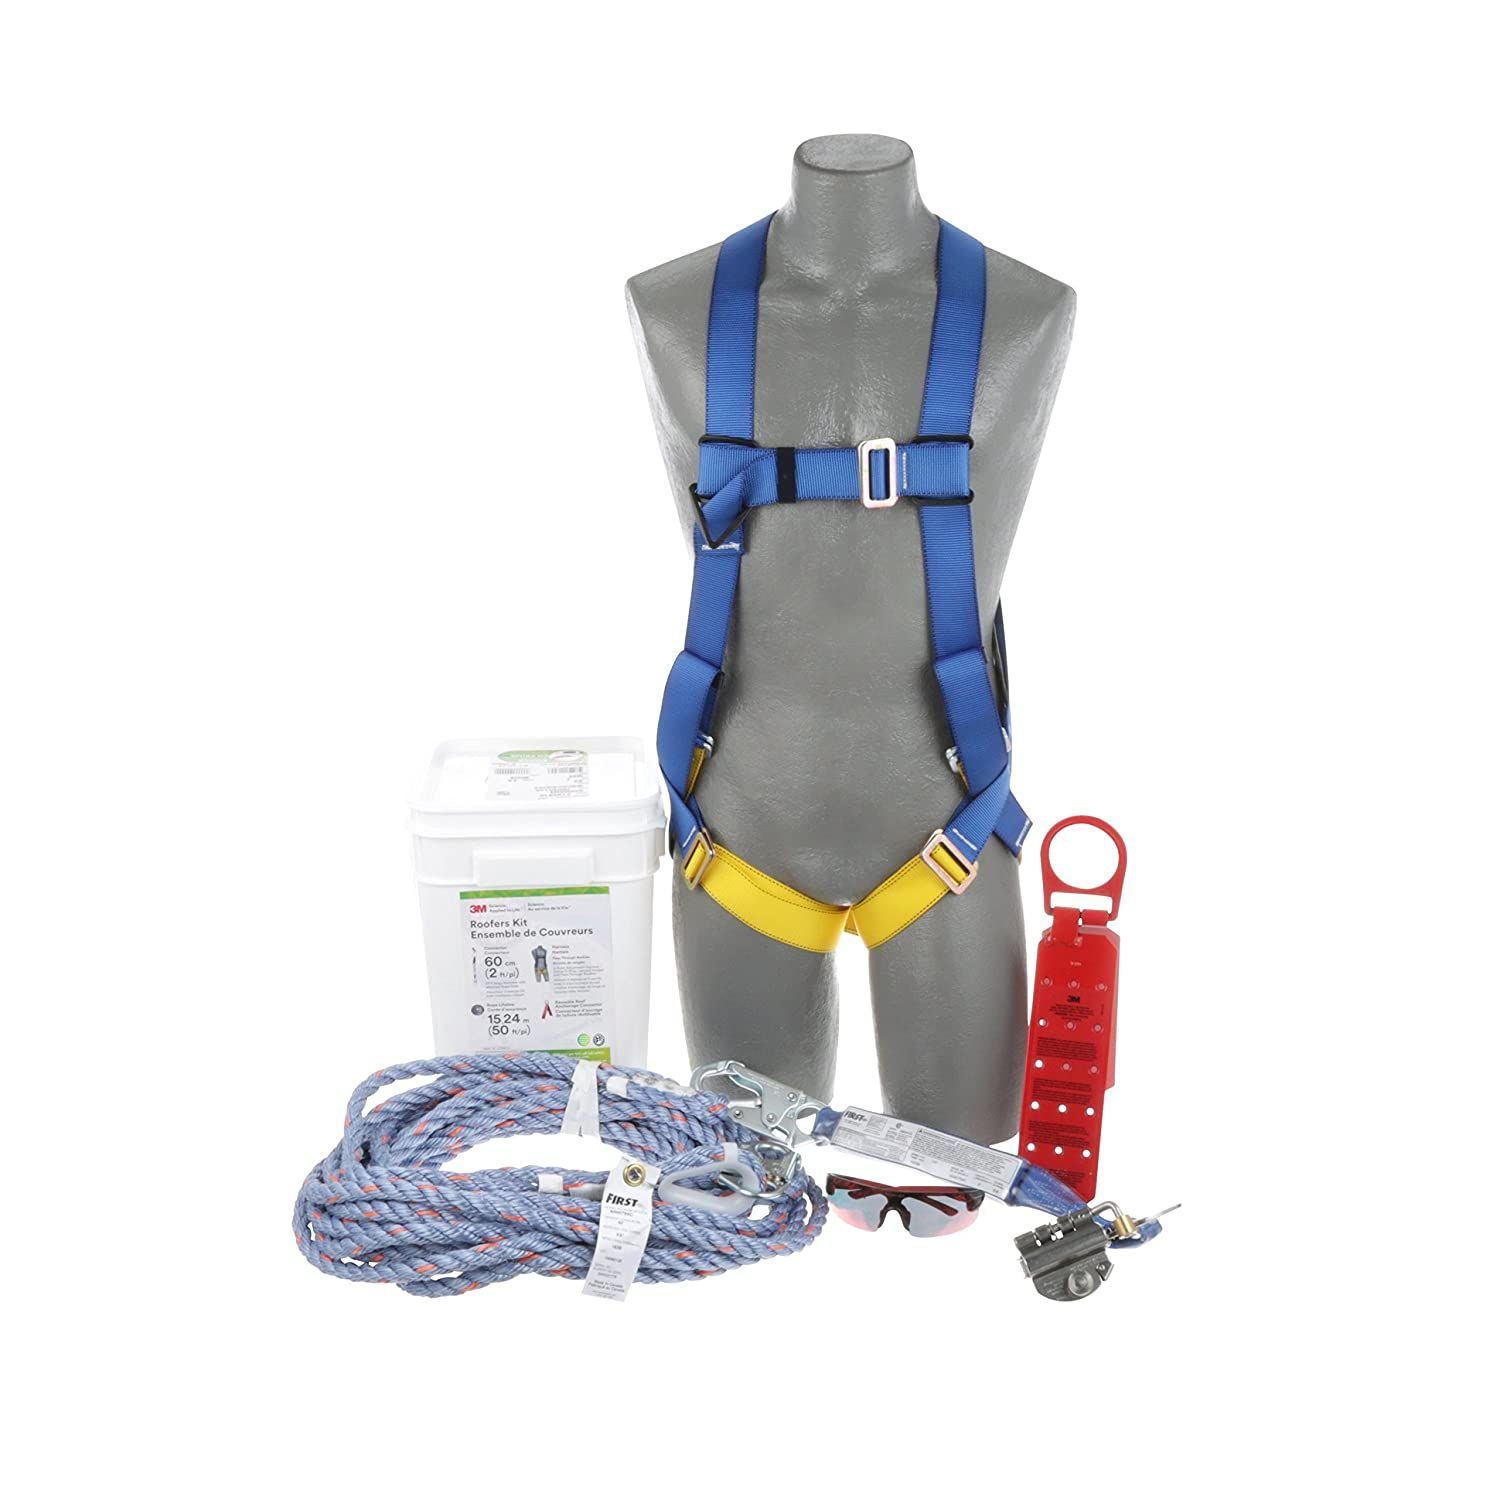 3M 2199914 CSA Roofer' s Kit with Tongue Buckle Harness